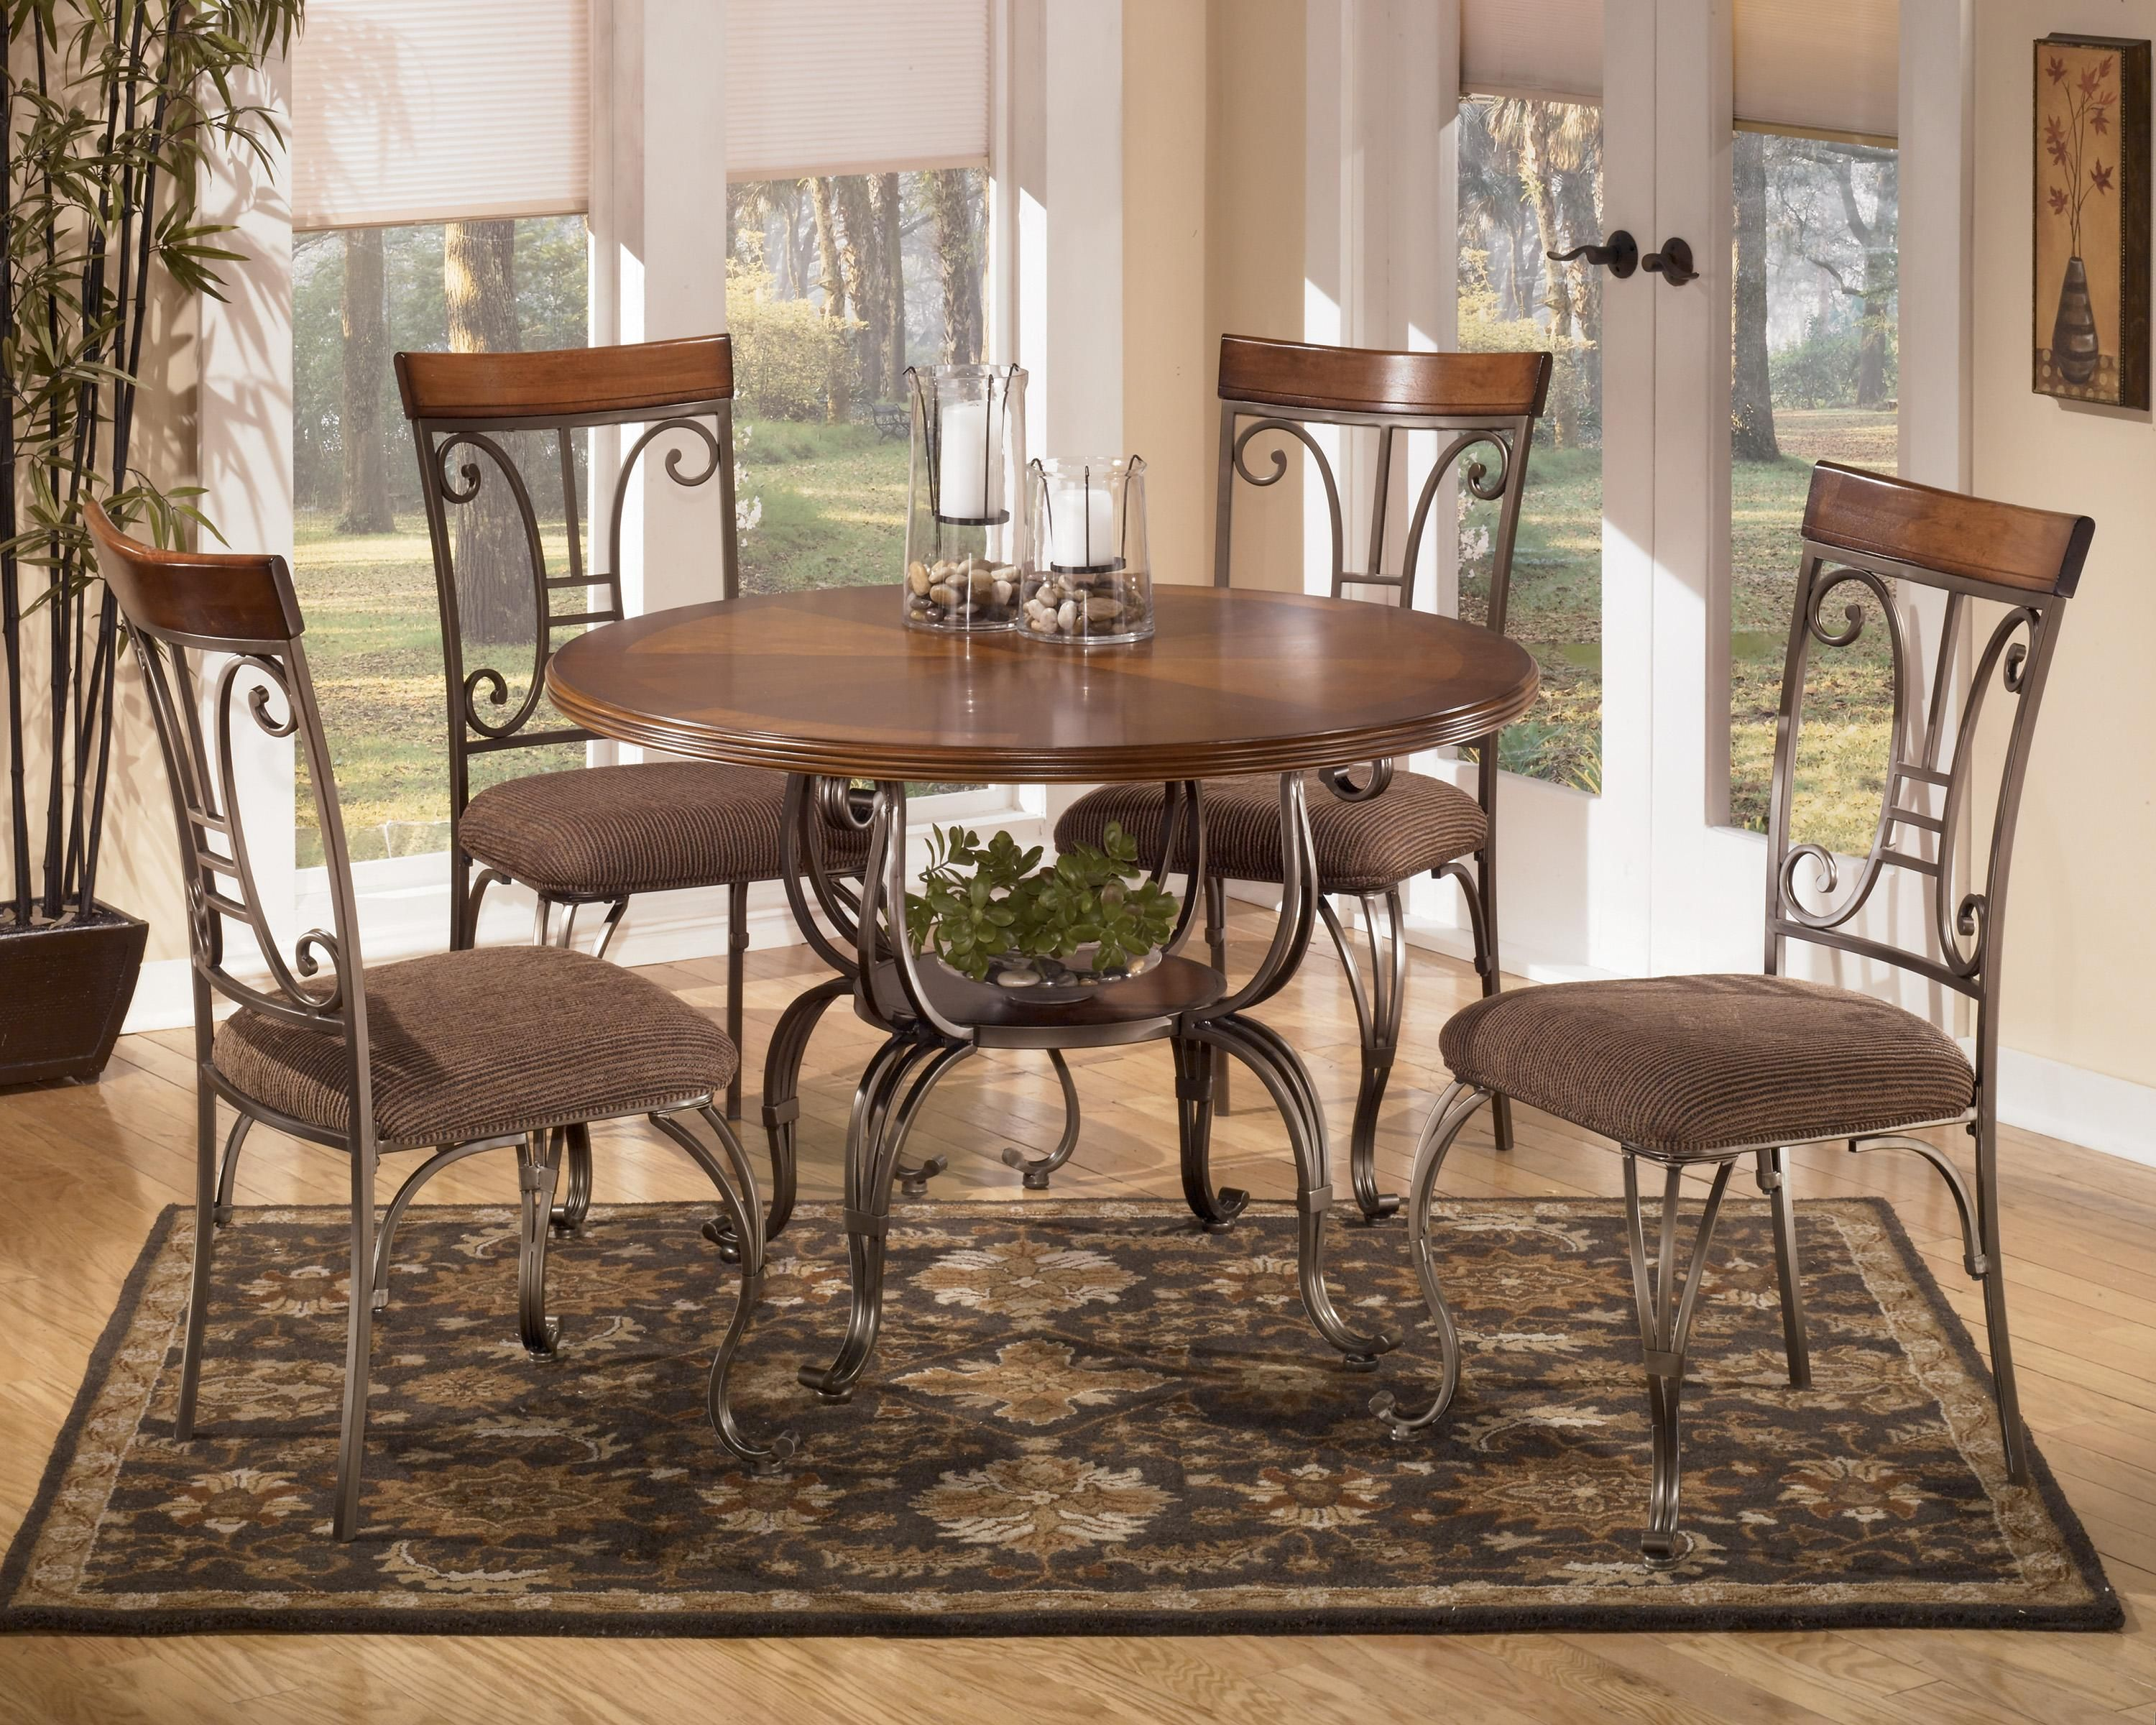 Plentywood 5 Piece Round Dining Table Set By Signature Design Ashley